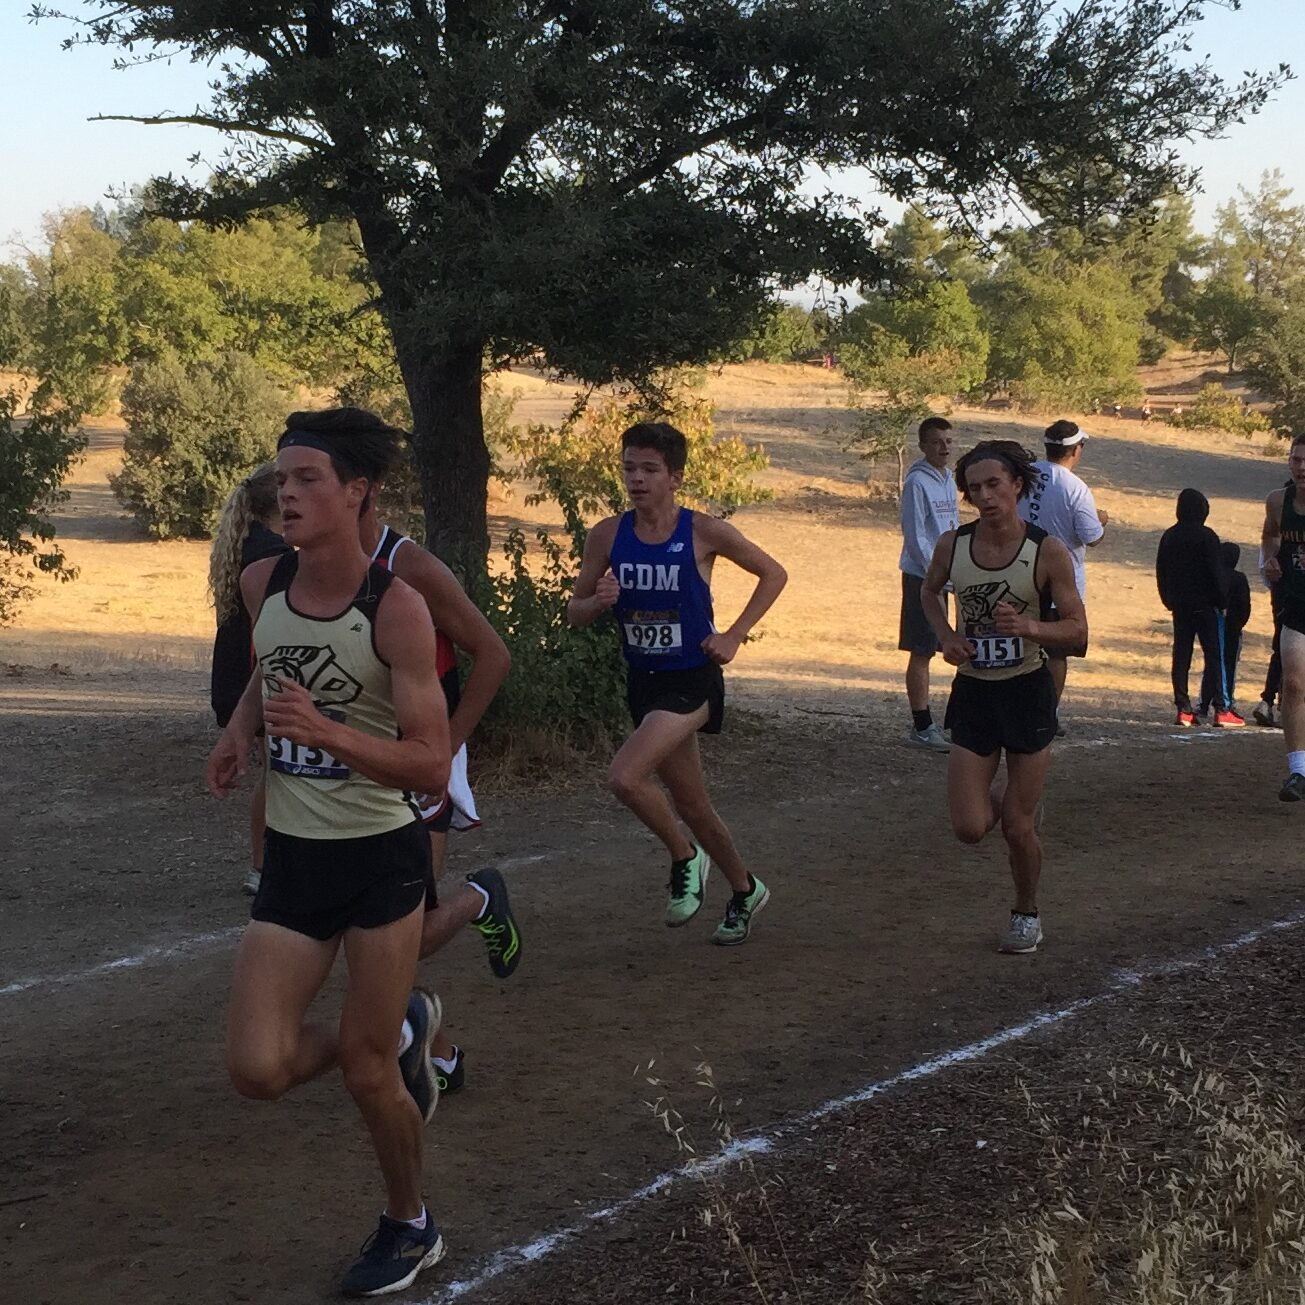 RESULTS – CLOVIS INVITATIONAL